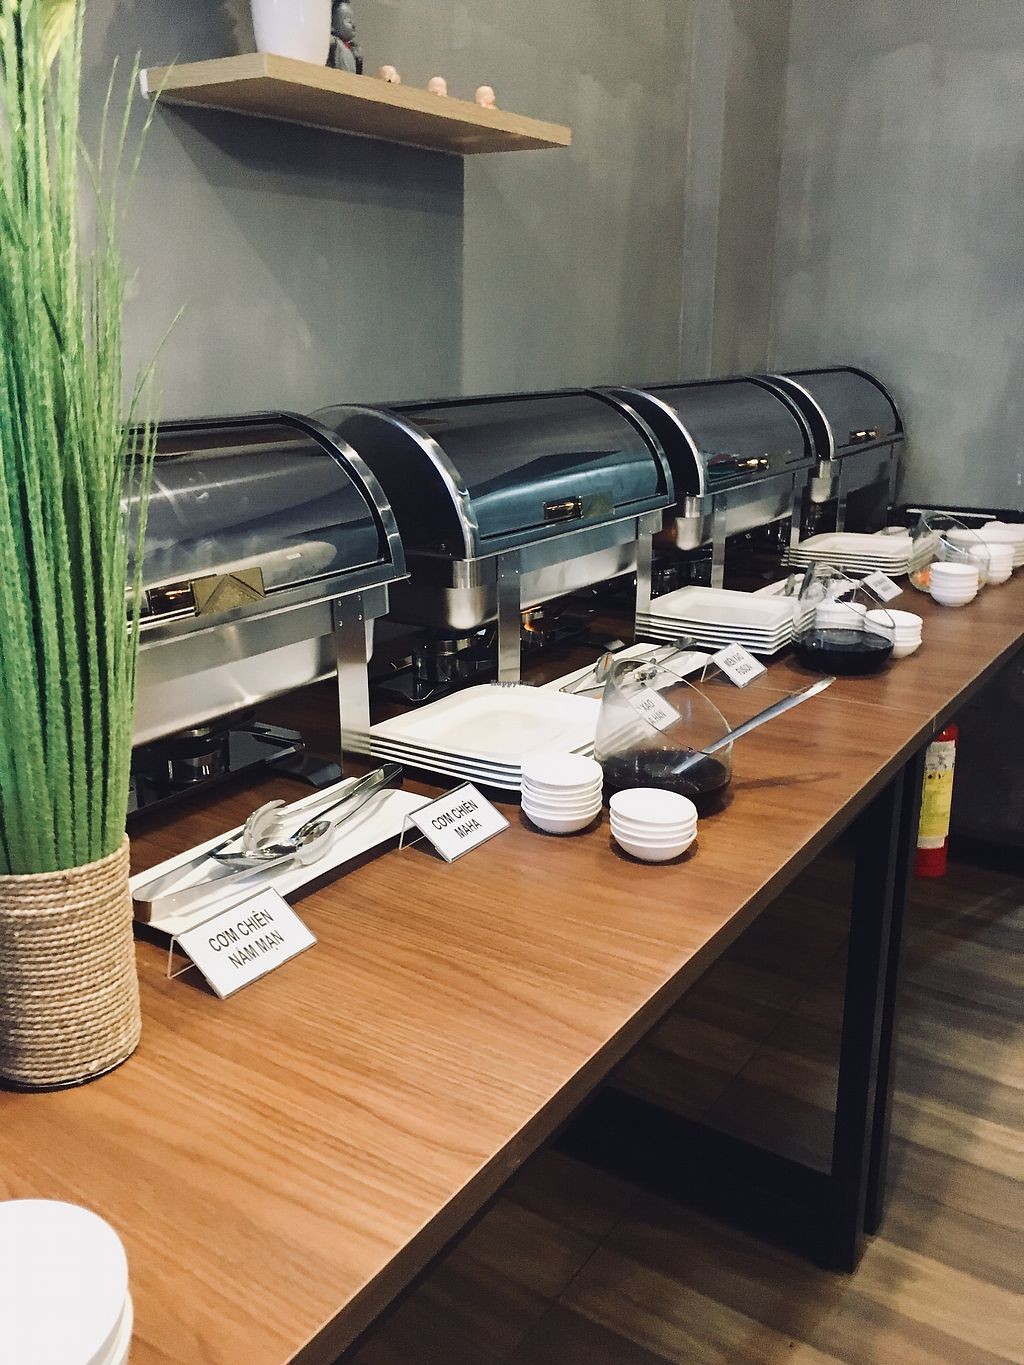 """Photo of Maha Vegan  by <a href=""""/members/profile/BastianSteinbach"""">BastianSteinbach</a> <br/>Warm vegan buffet  <br/> March 18, 2018  - <a href='/contact/abuse/image/111634/372210'>Report</a>"""